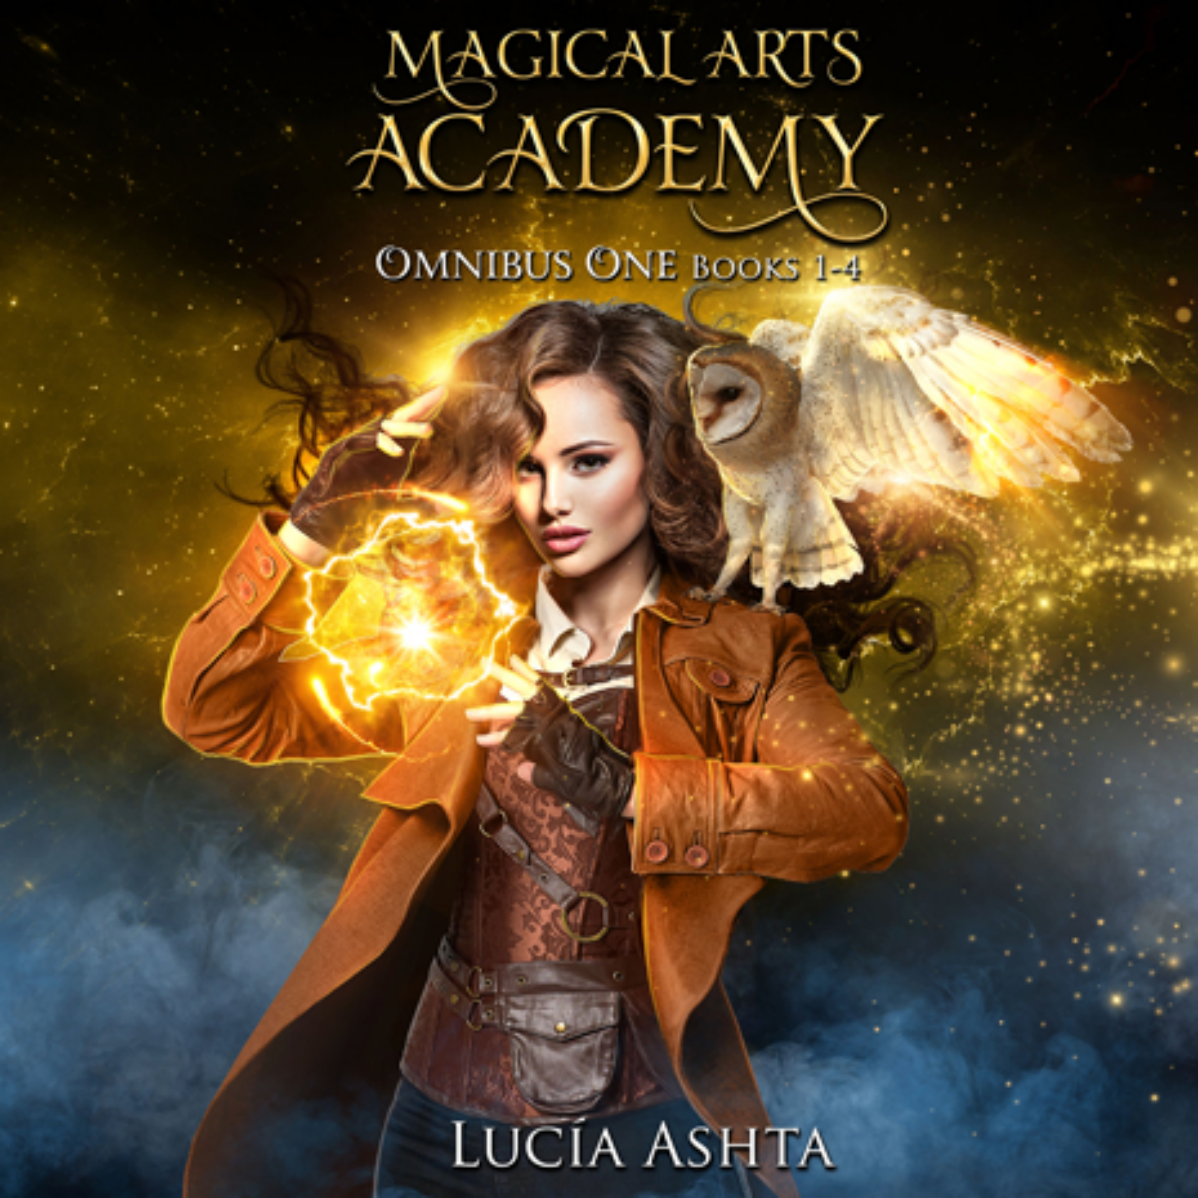 Magical Arts Academy omnibuses audiobook covers